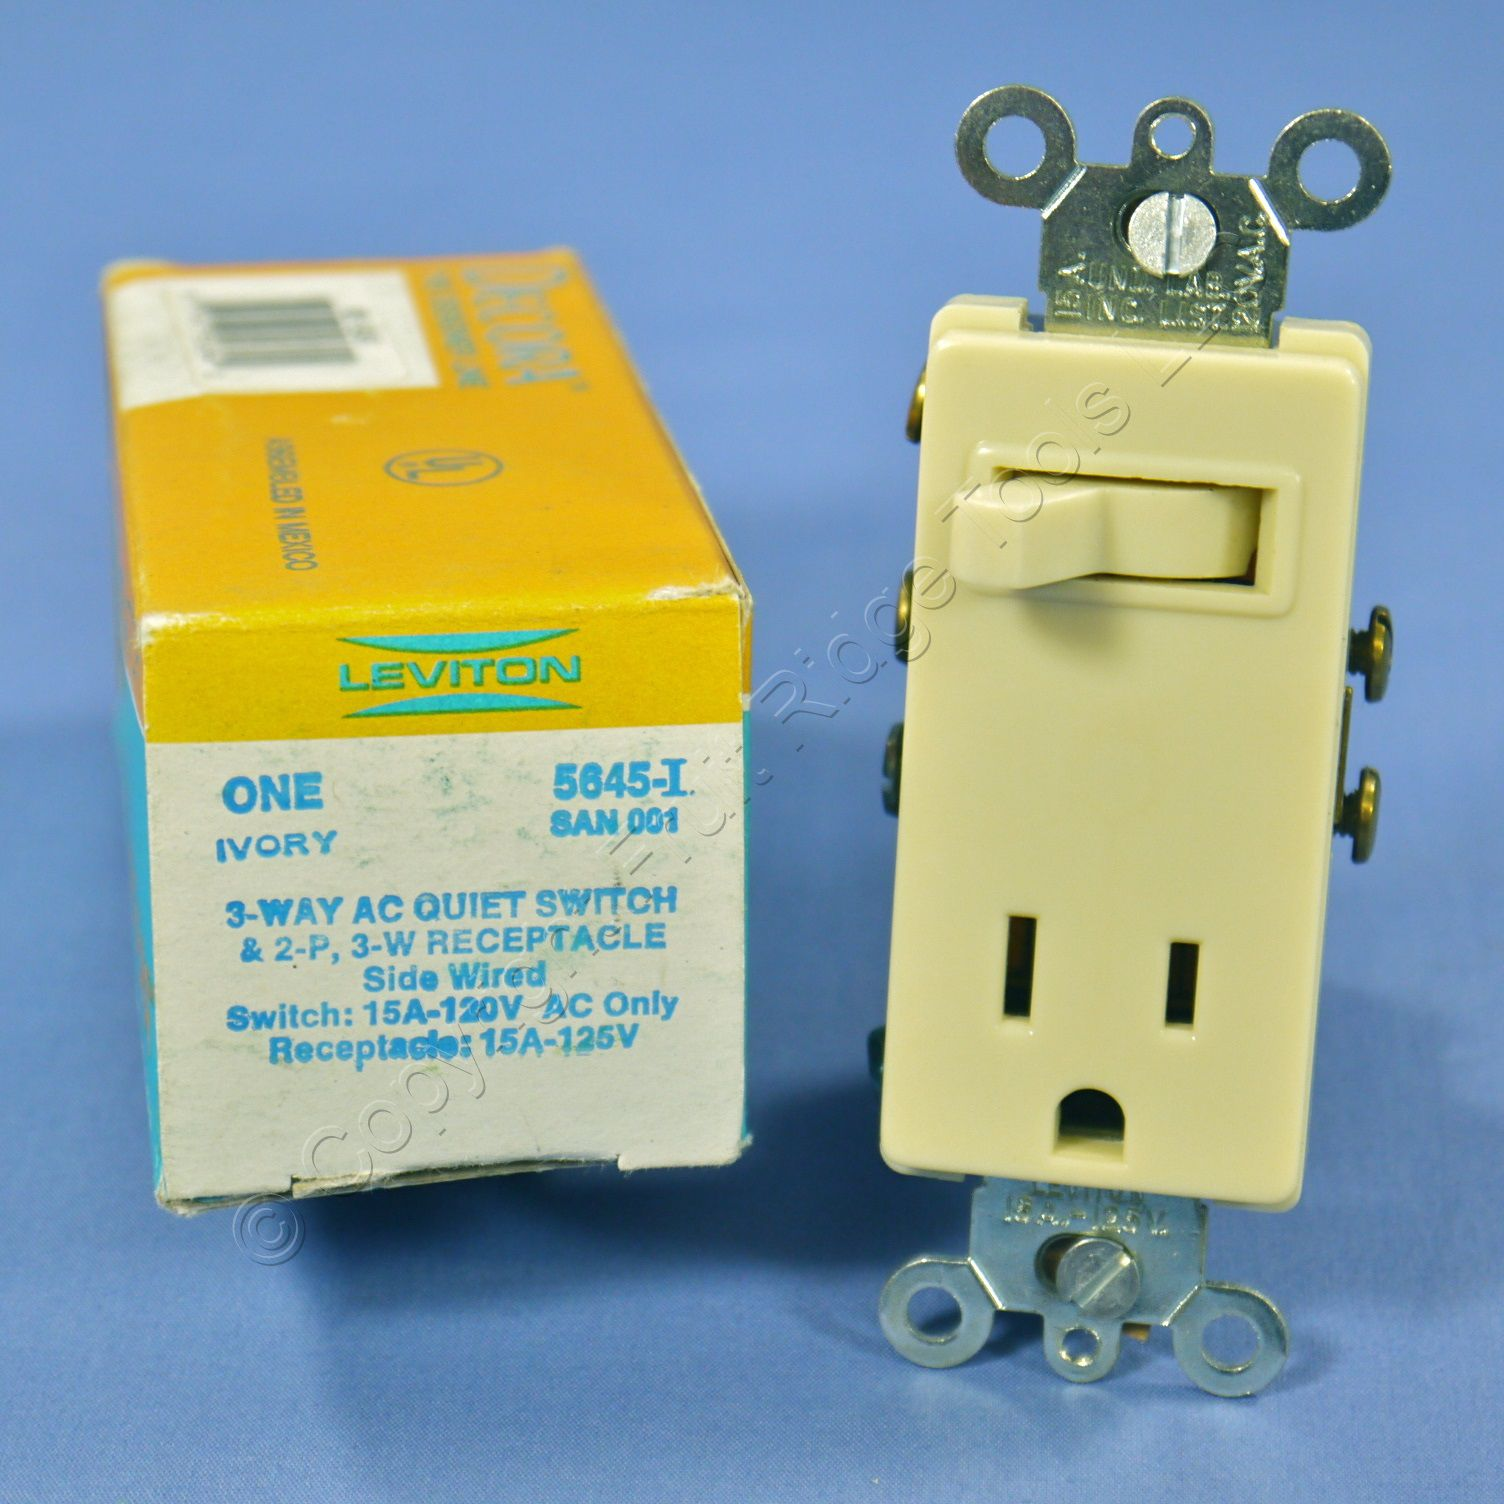 3 way outlet car sound system wiring diagram new leviton ivory decora toggle switch and single